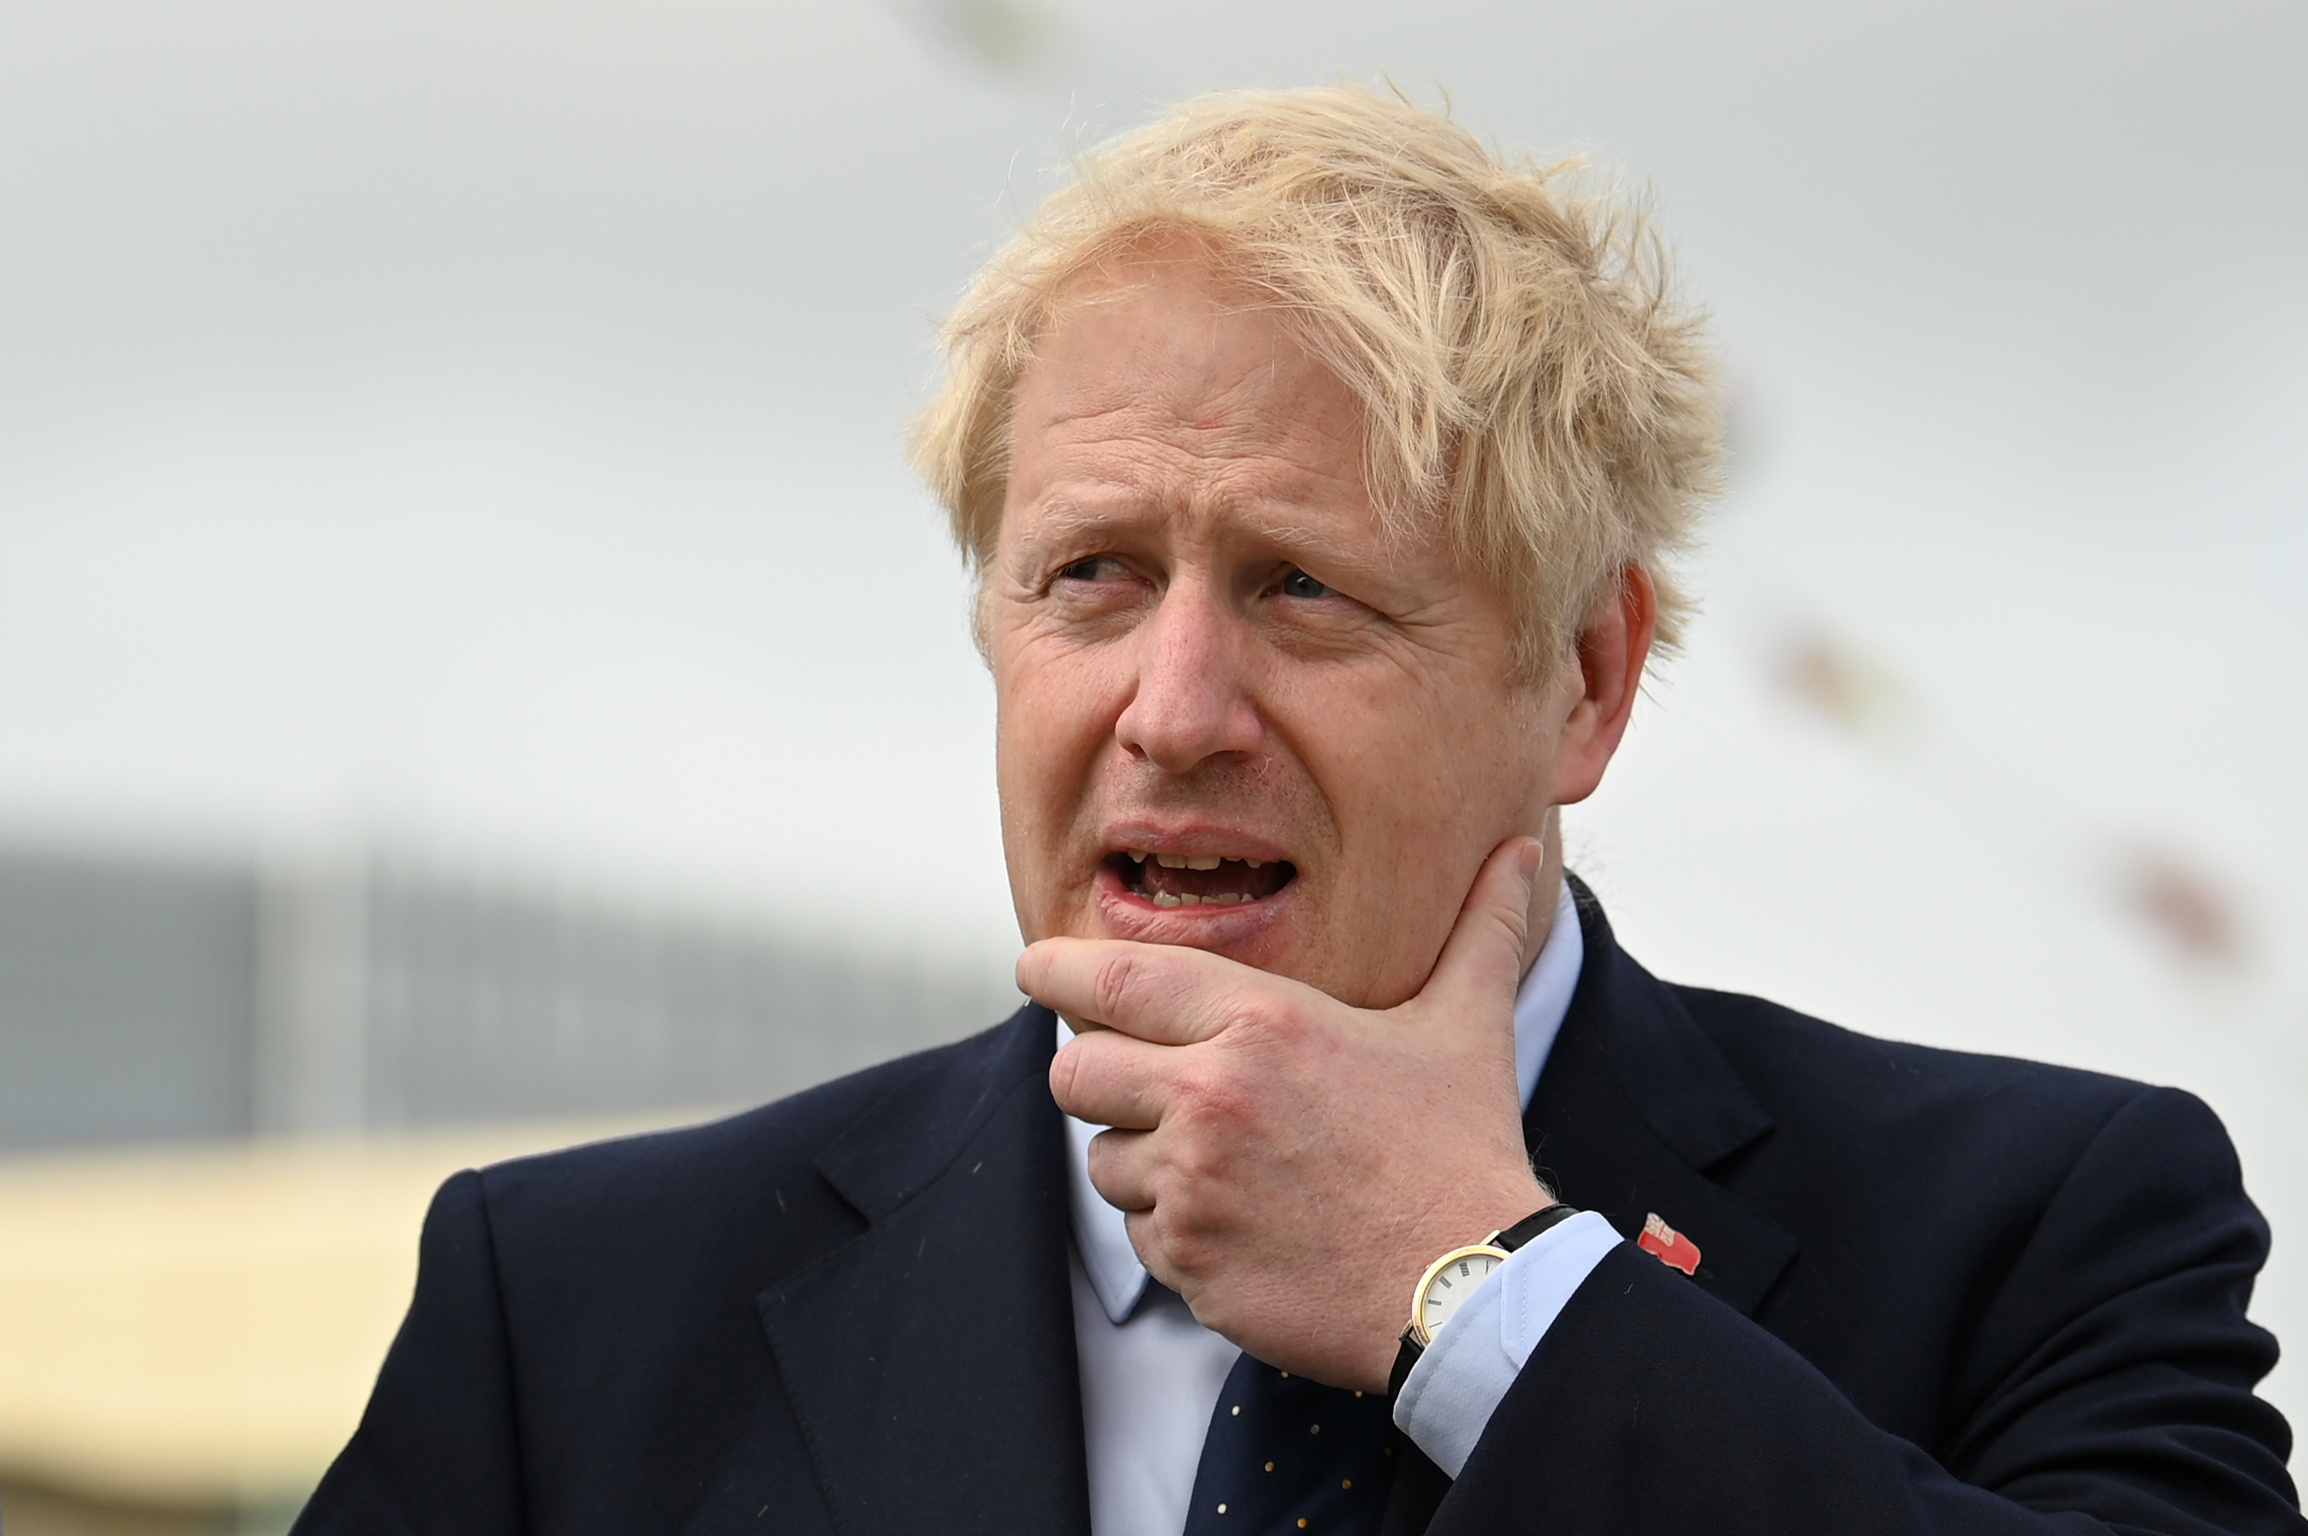 Britain's Prime Minister Boris Johnson visits the NLV Pharos, a lighthouse tender moored on the river Thames to mark London International Shipping Week in London, Britain September 12, 2019. Daniel Leal-Olivas/Pool via REUTERS